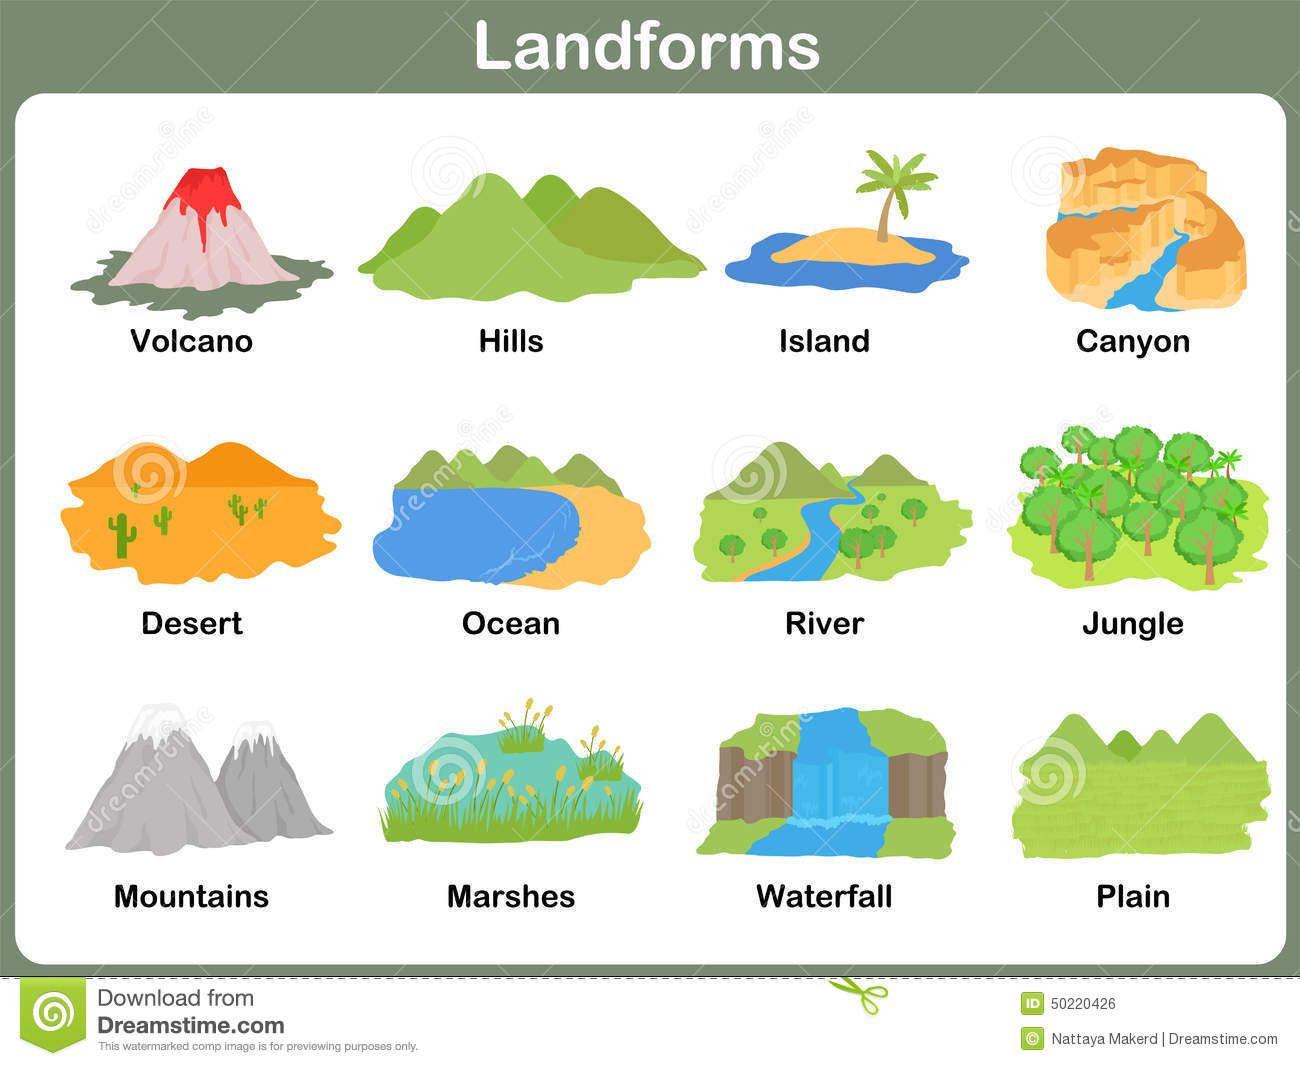 Landforms Worksheets for 5th Grade Landform Worksheets